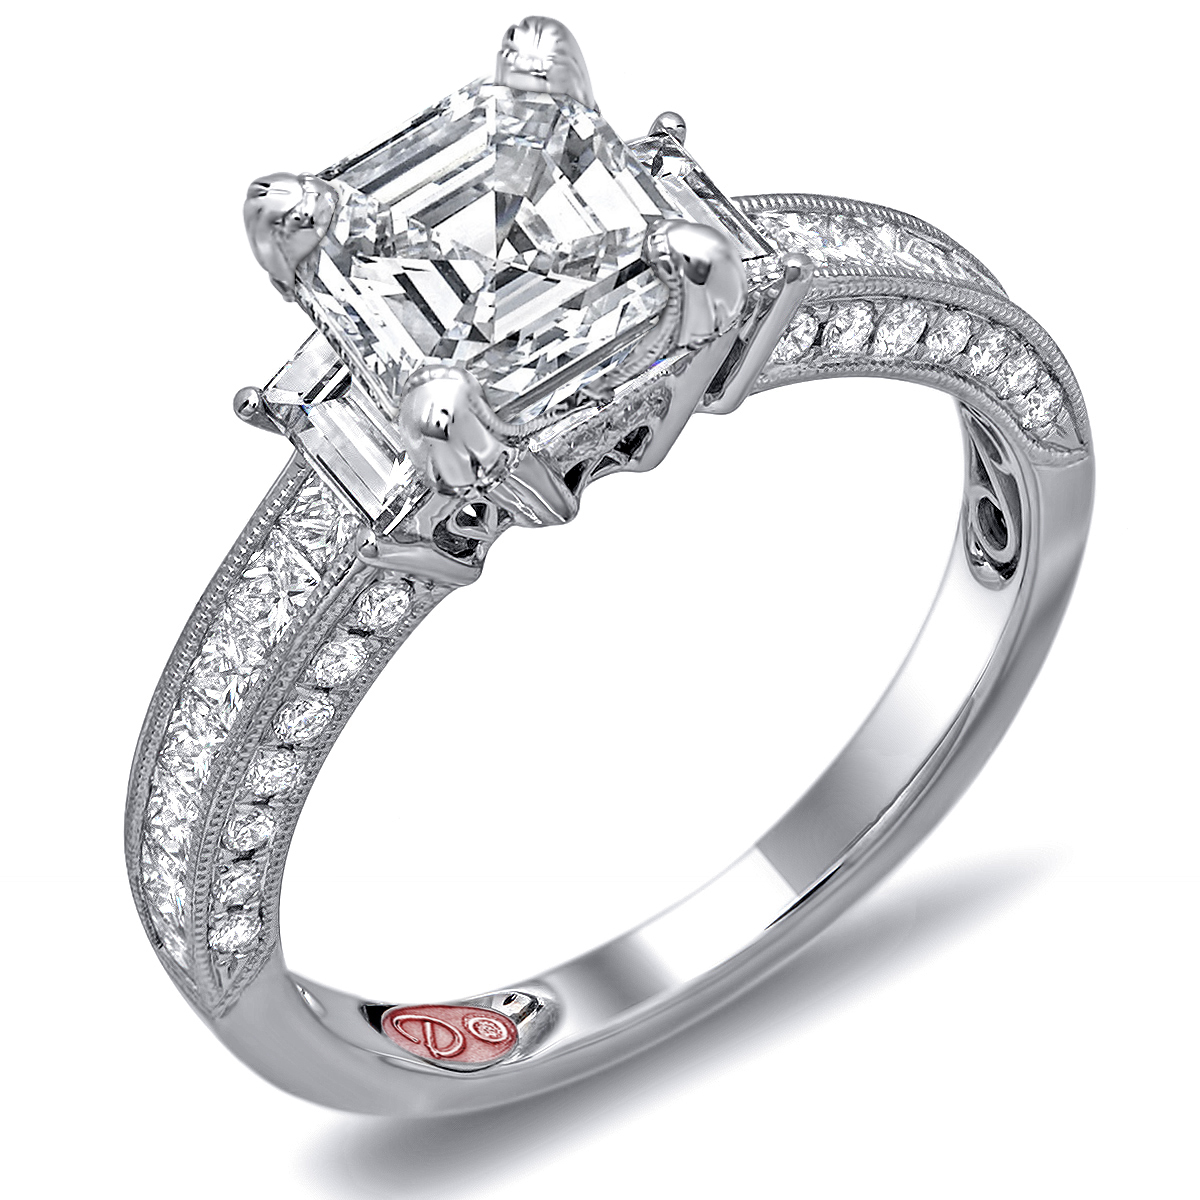 ... San Diego | San Diego Wedding Rings | Diamond Rings In California |  Engagement Rings In California | California Wedding Rings | Designer  Engagement ...